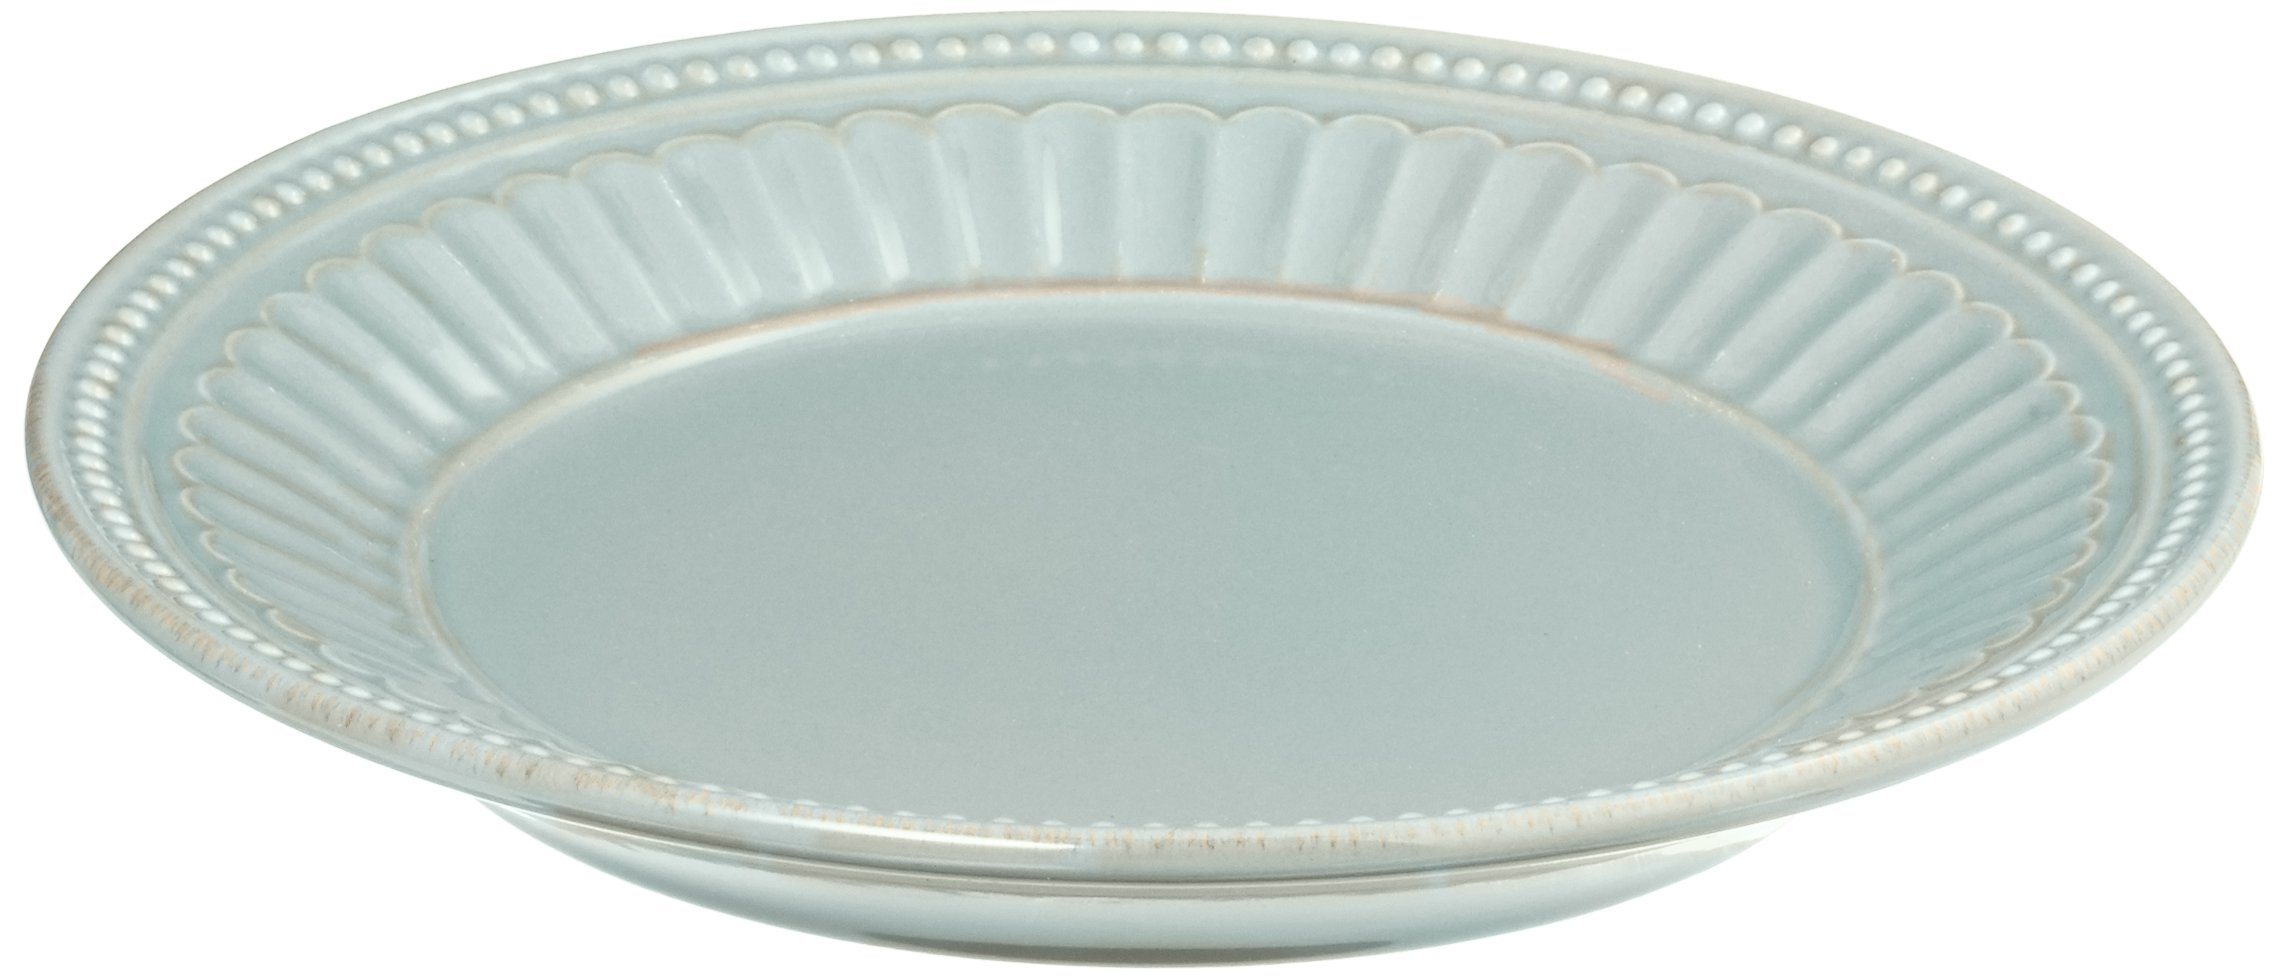 Lenox French Perle Everything Plate, Ice Blue by Lenox